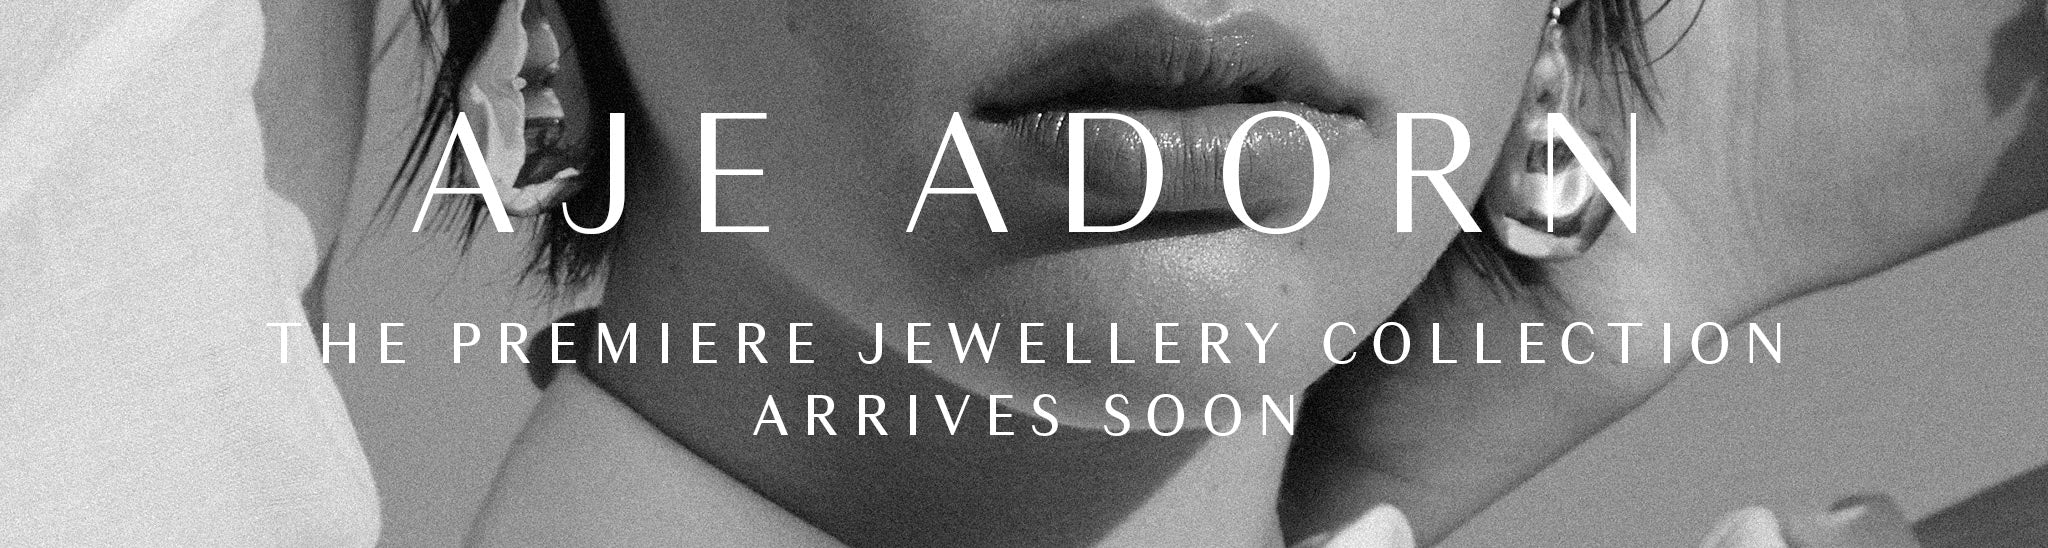 Aje Adorn Jewellery Collection